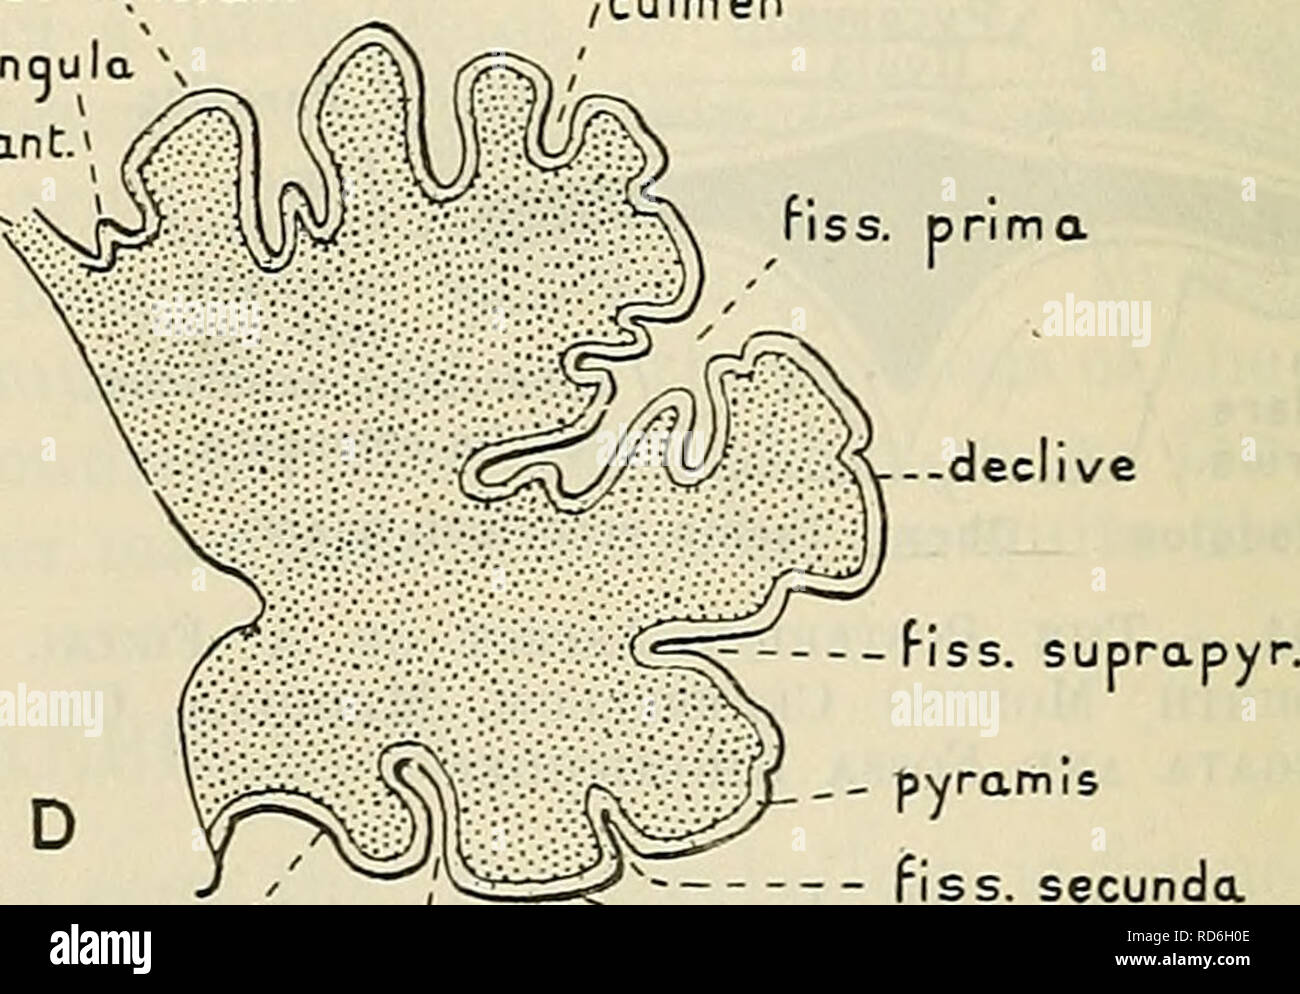 . Cunningham's Text-book of anatomy. Anatomy. v uvula N lobus posterior iss. prima fiss. postnodul.. D nodulus . _ - pyramis — fiss. secunda fiss.ppstnodularis uvu a Fig. 507.—Median Sagittal Sections of Fcetal Cerebella in Four Stages of Development. A and B, third month; C, fourth month ; D, fifth month. declive which is described as consisting of three parts (declive, folium vermis, and tuber vermis). 1 The term medial is used advisedly because, the anterior and posterior lobes having quite insignificant lateral connexions, the rest of the vermis is virtually the medial continuation of (or  - Stock Image